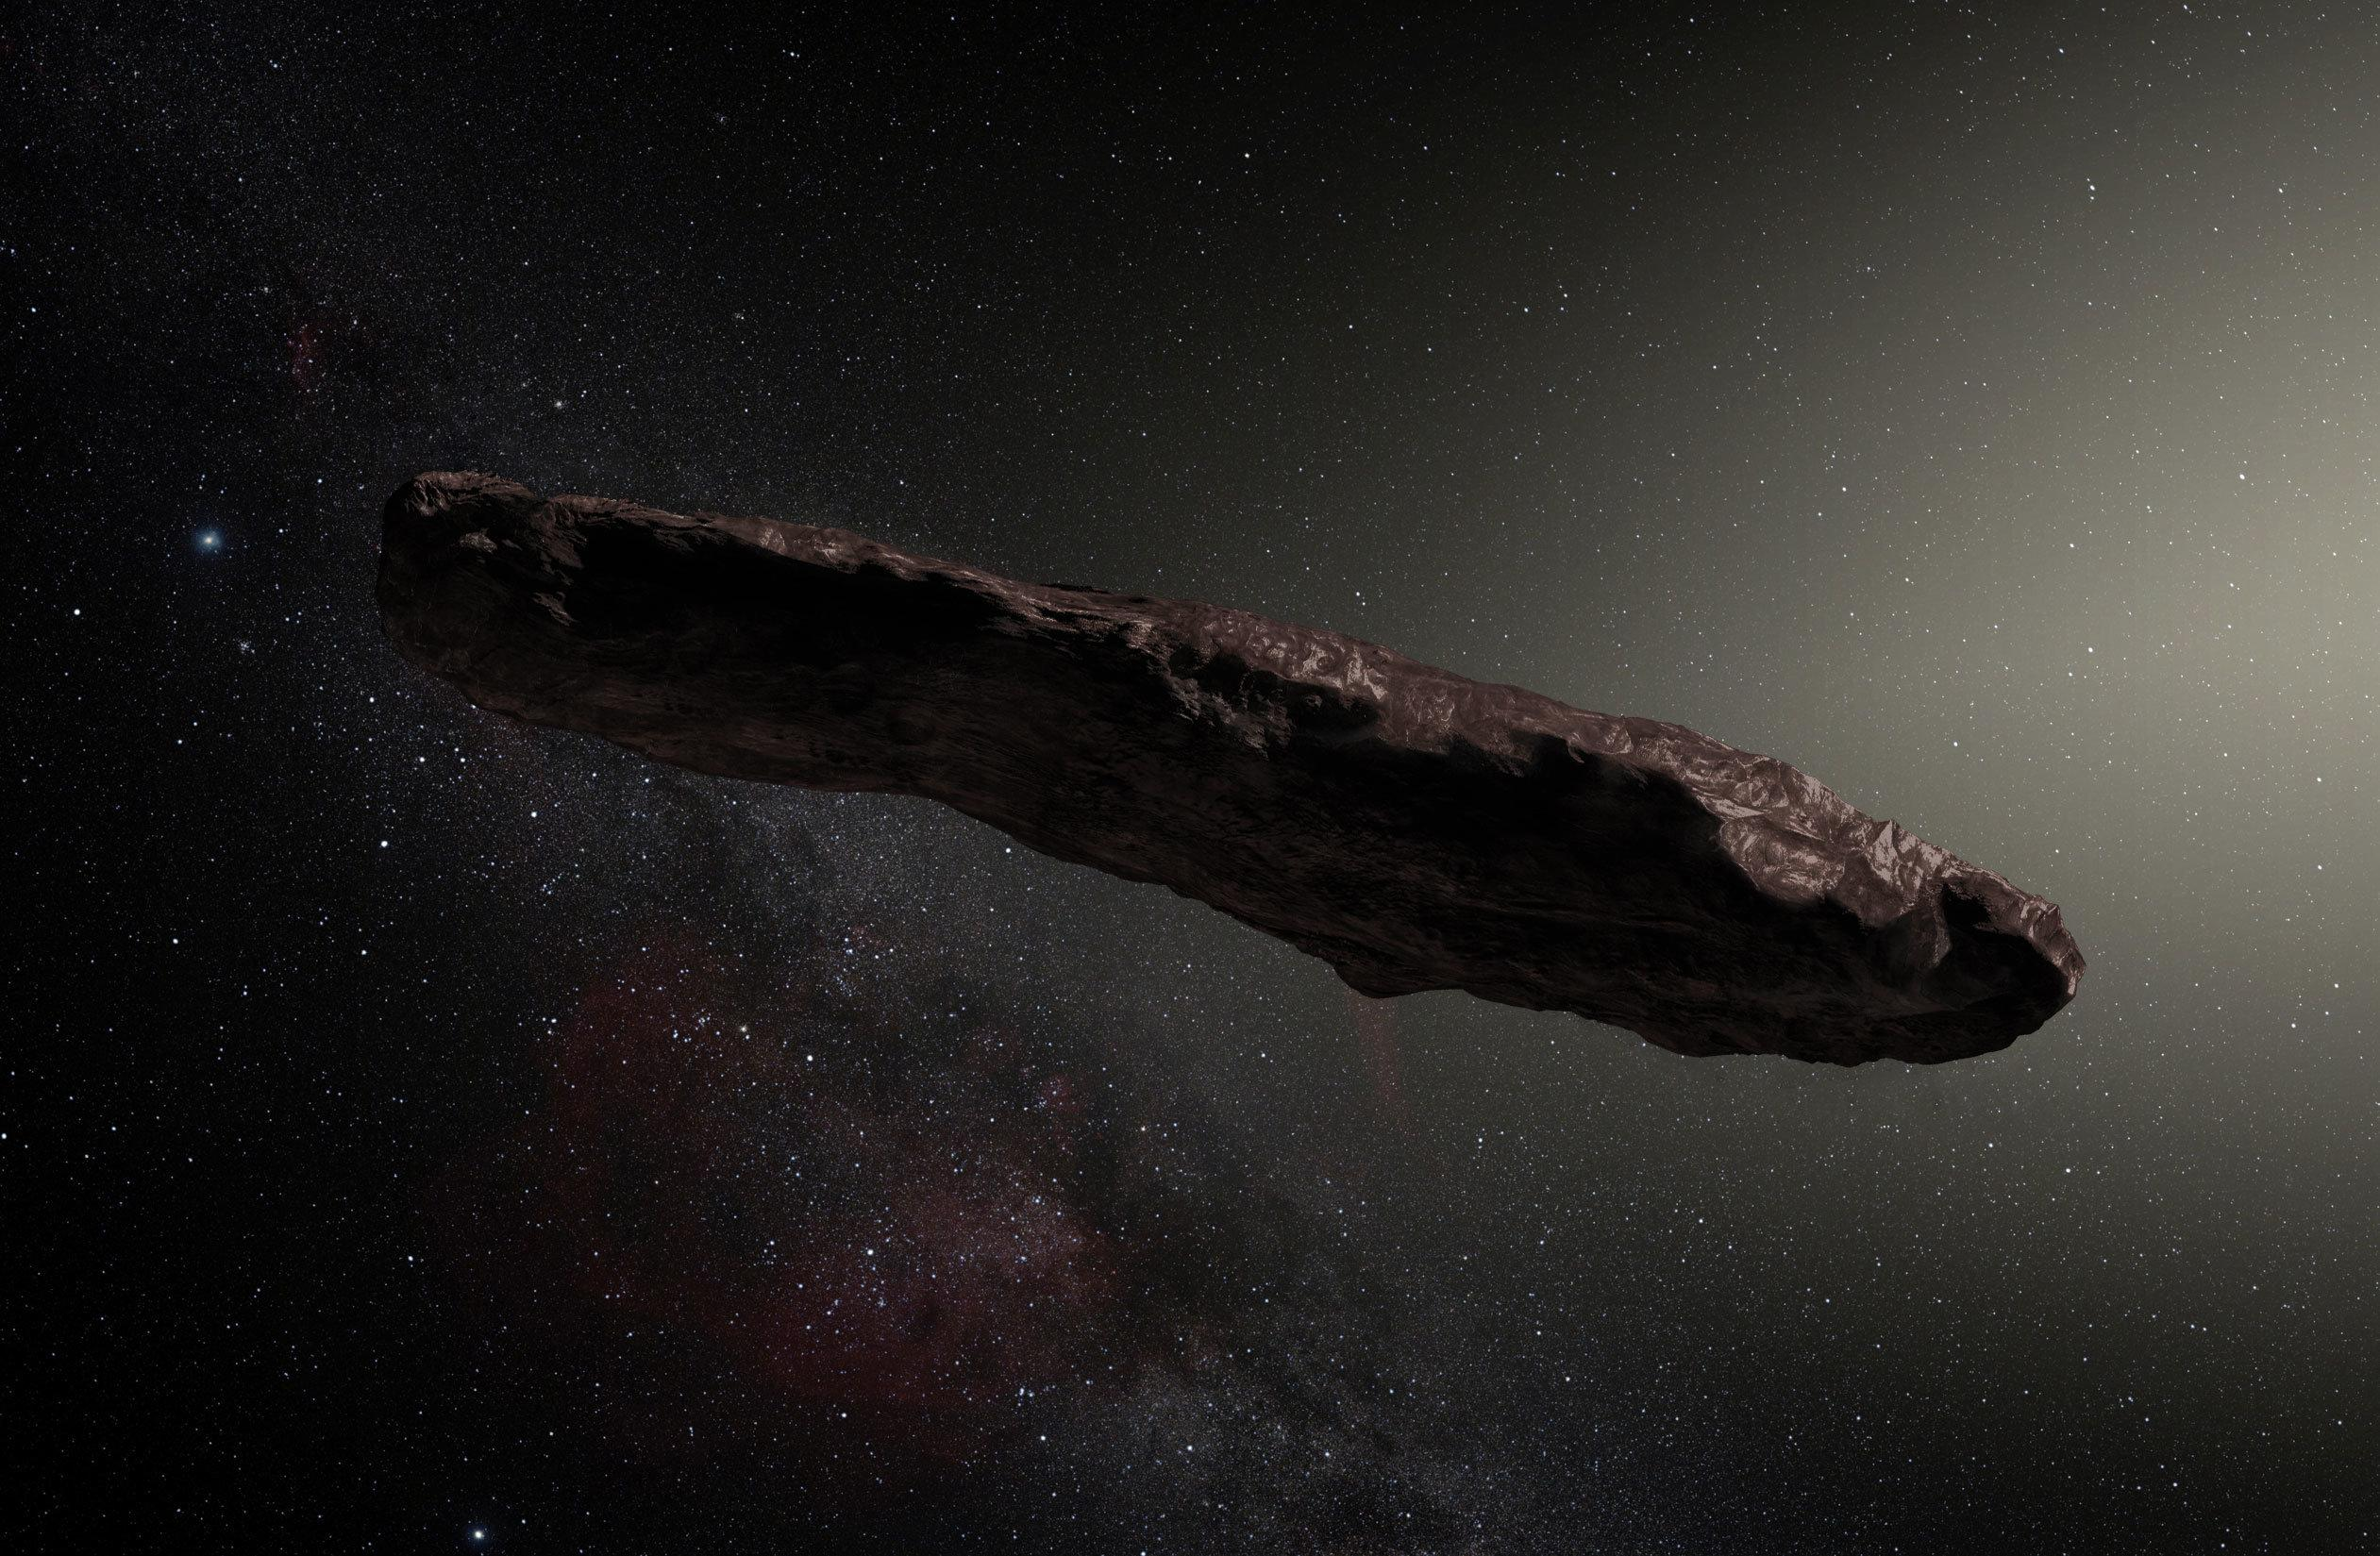 That weird 'alien probe' asteroid might not be an asteroid after all